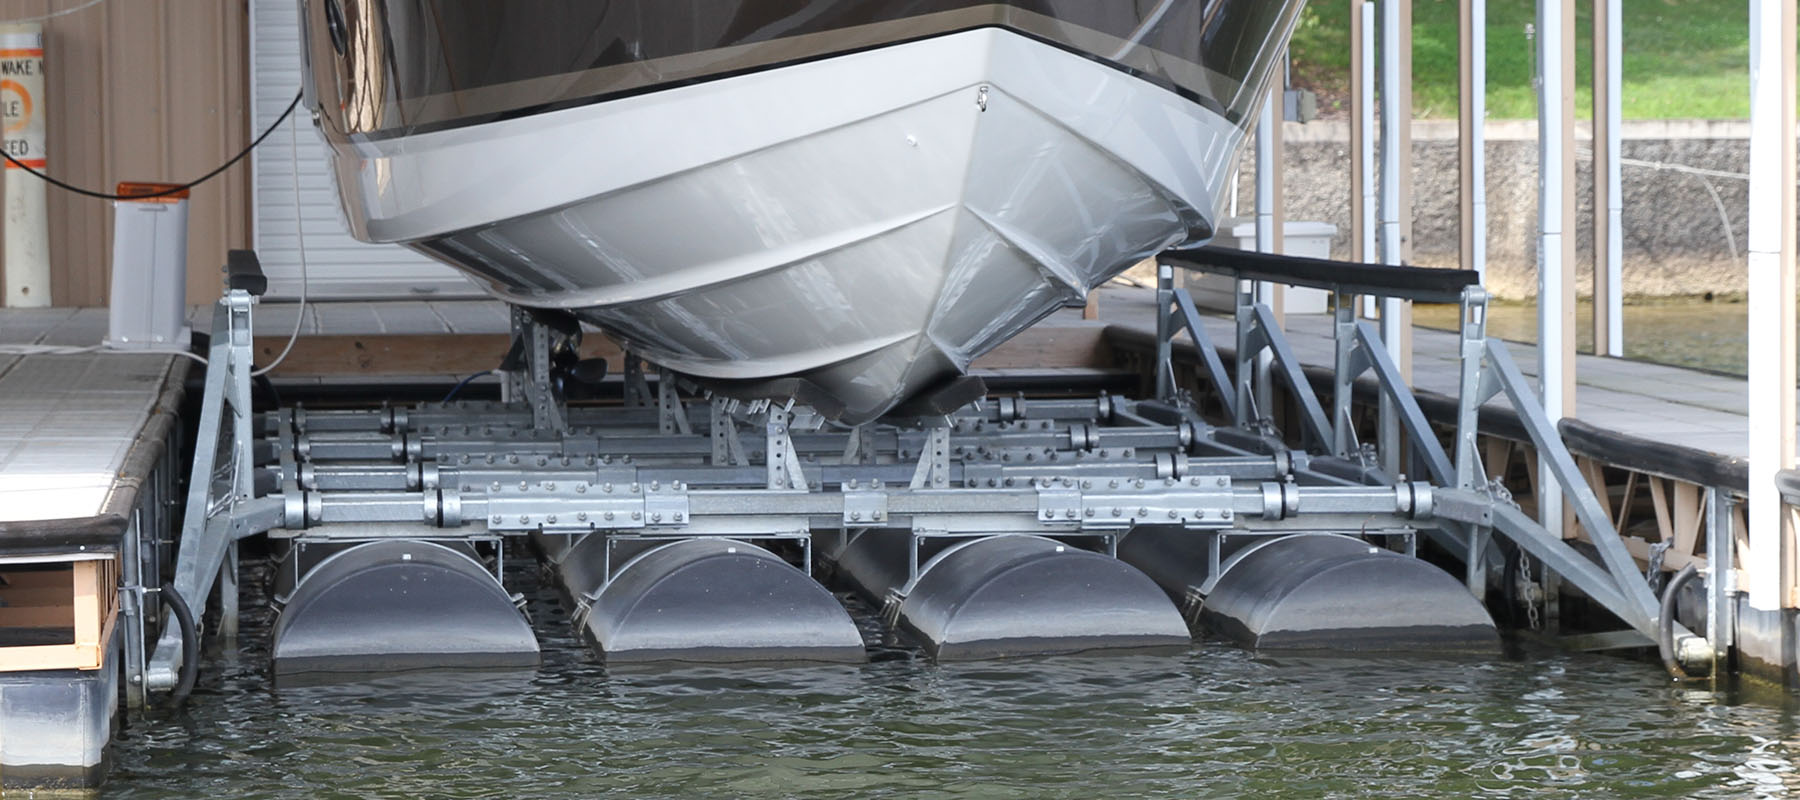 14,000 lb boat lift at the Lake of the Ozarks